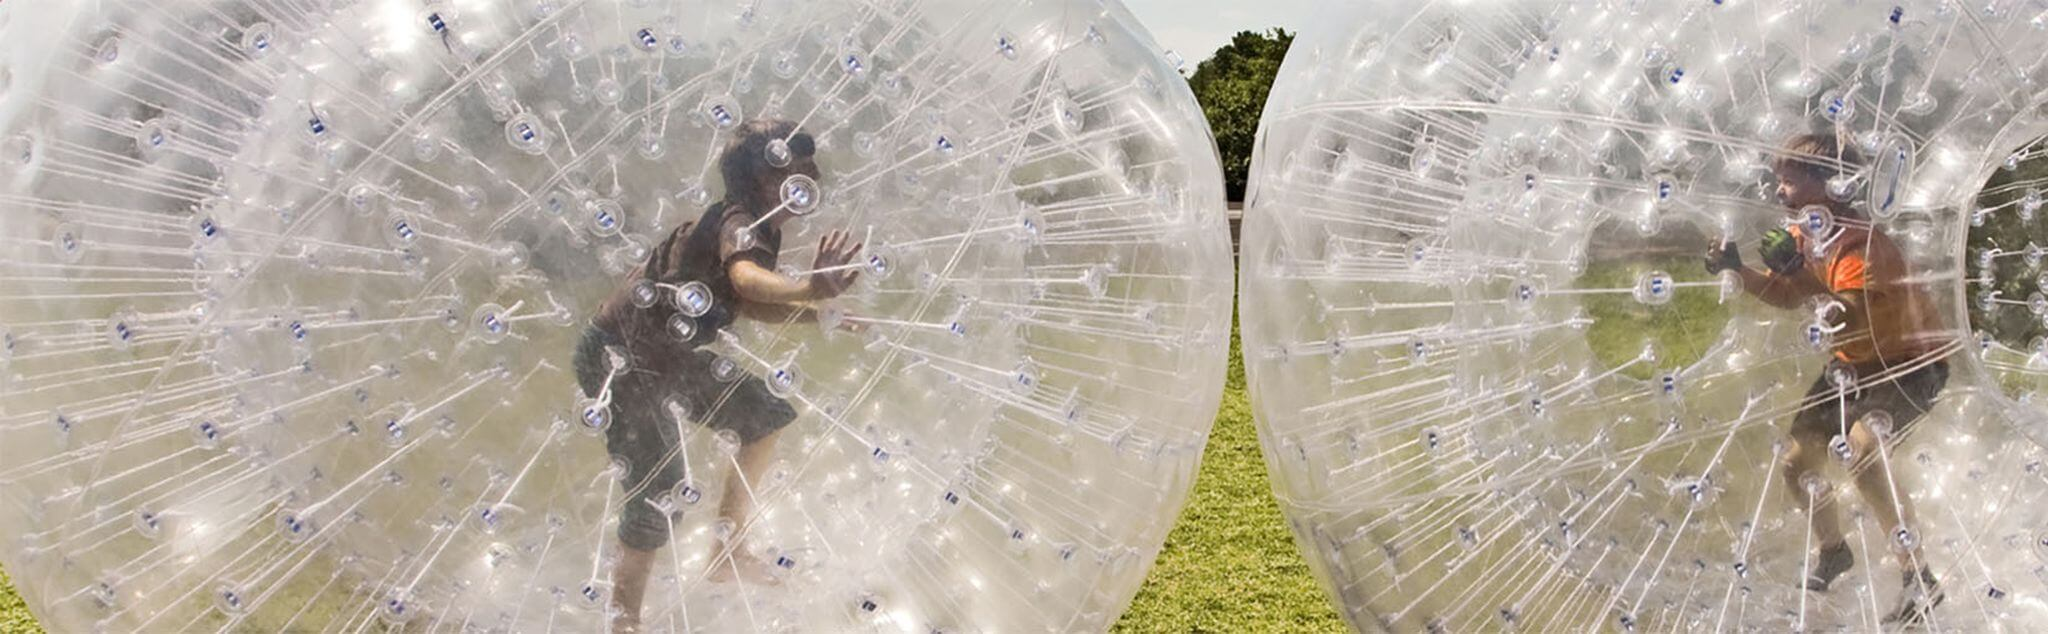 Bubble Football a Orense